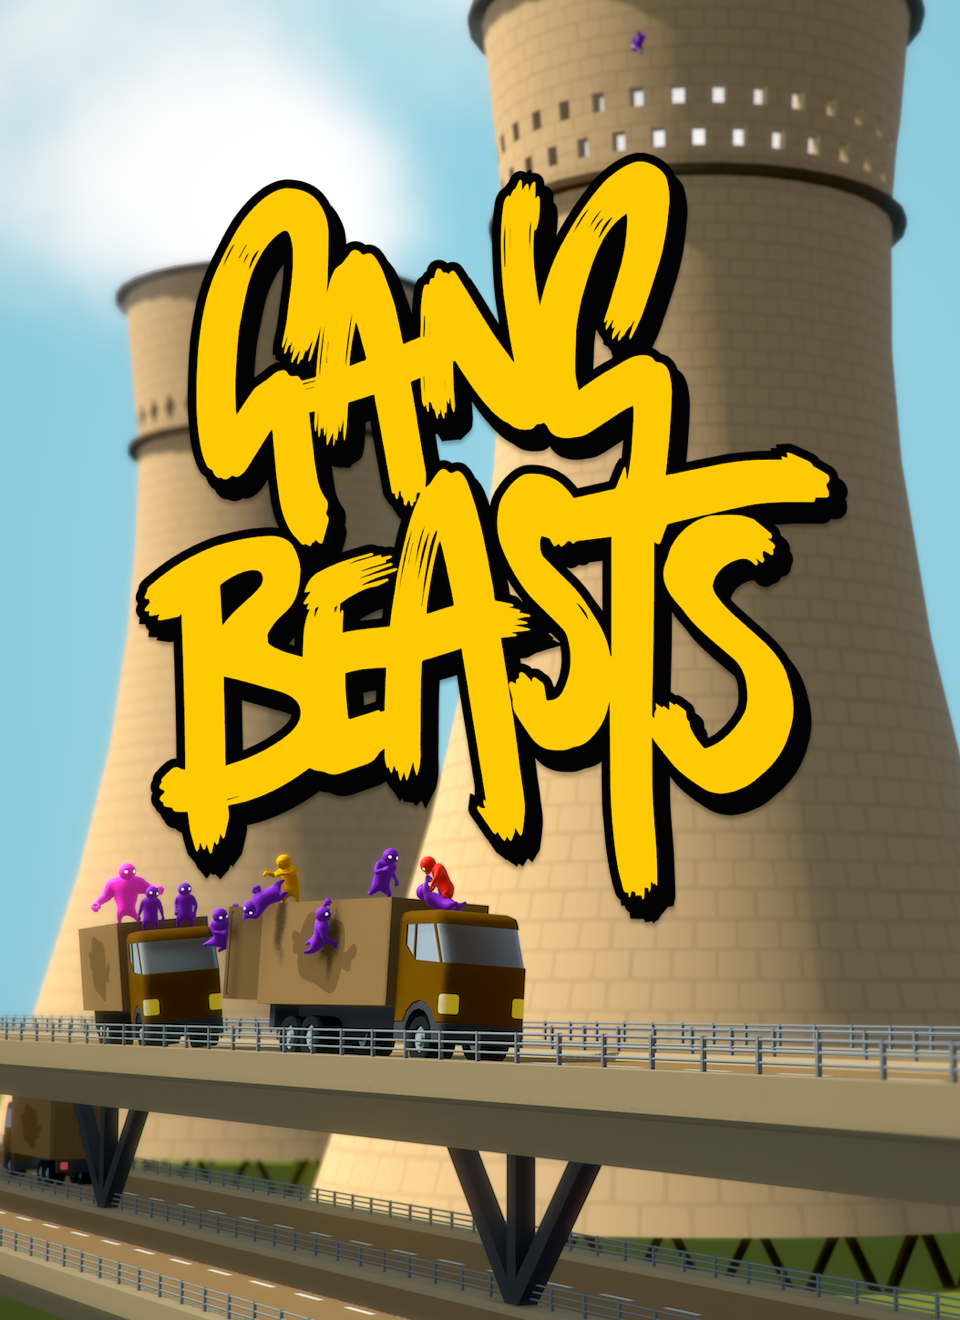 Gang beasts release date in Australia